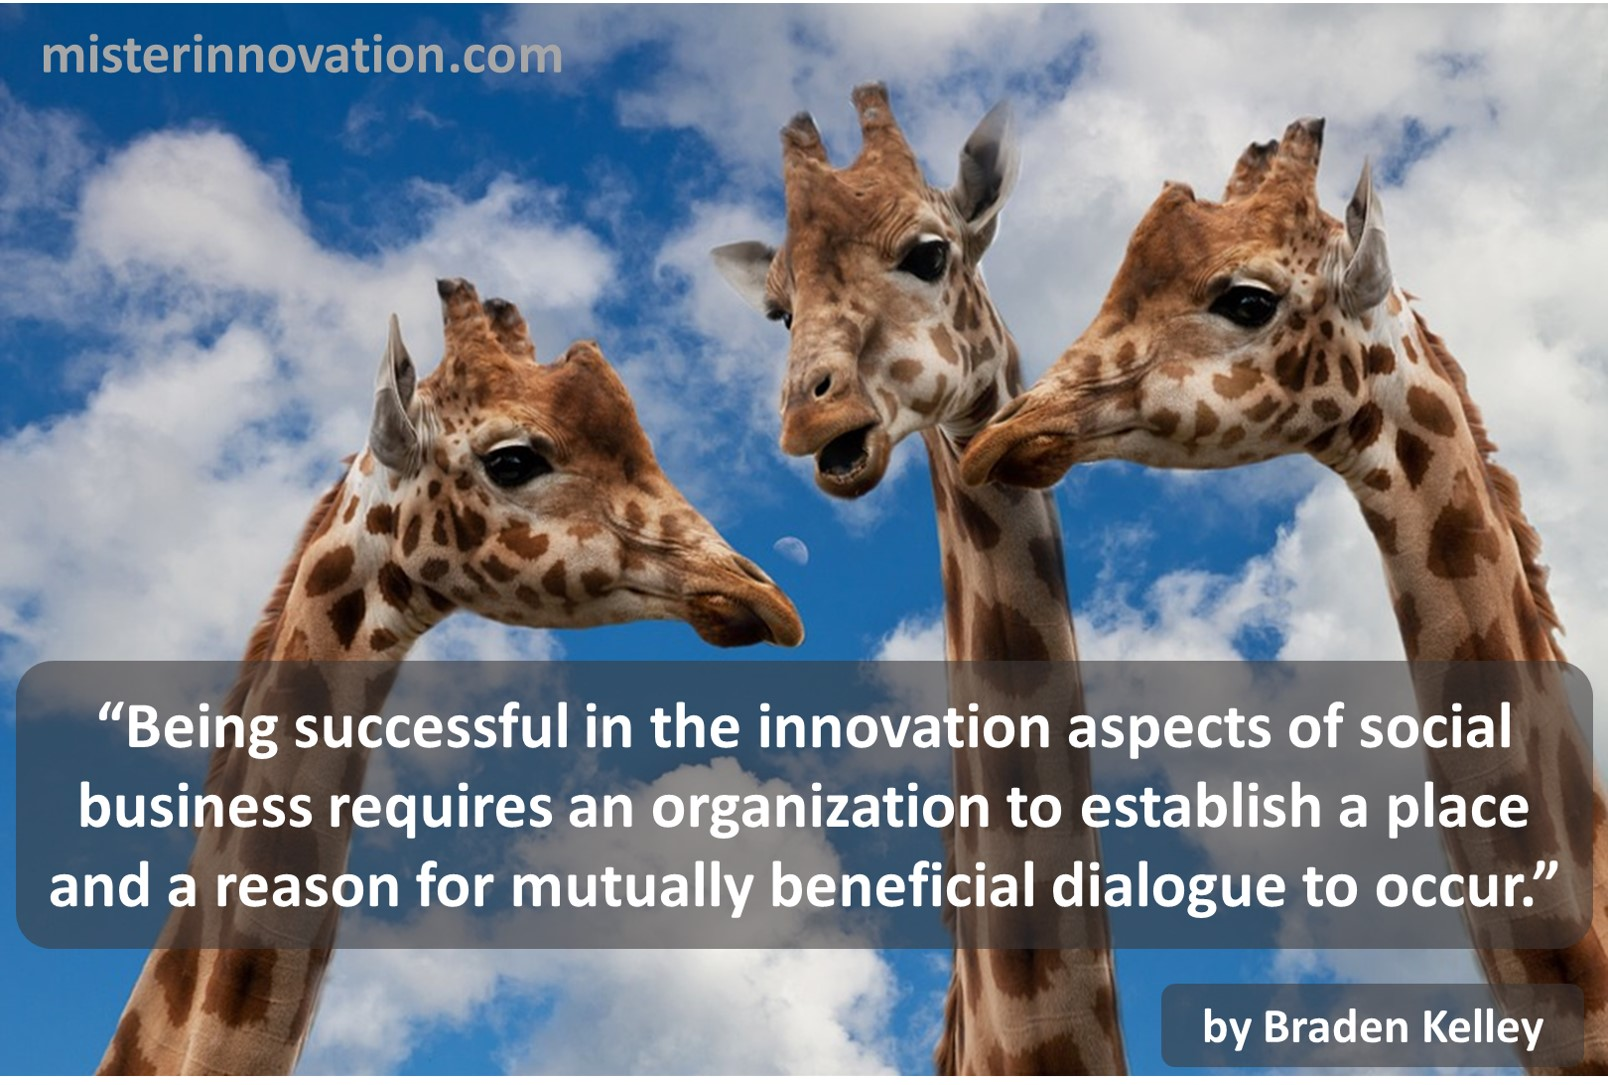 Braden Kelley Quote on Innovation, Social Business and Dialogue